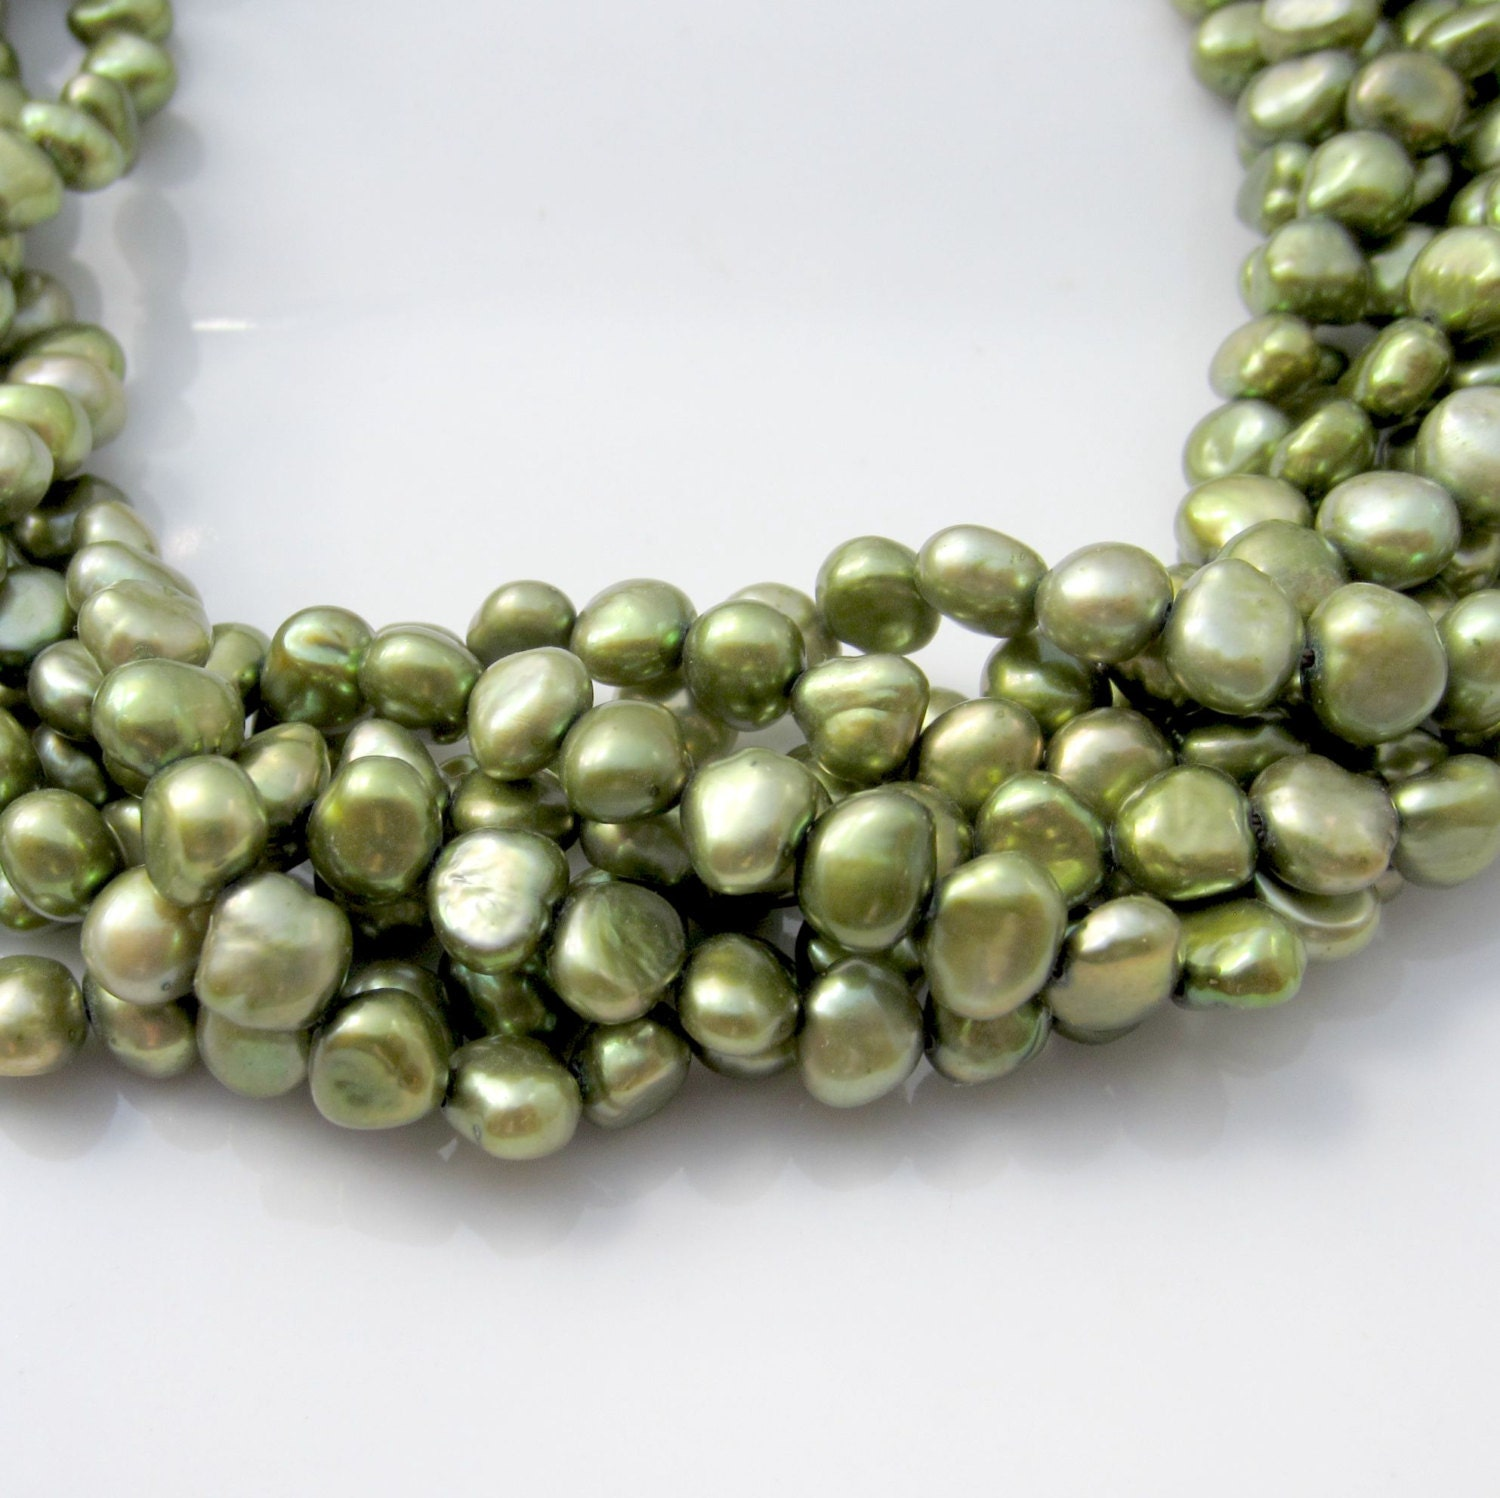 shop wire pod the pearls peas choose number hand pendants of pearl in green wrapped